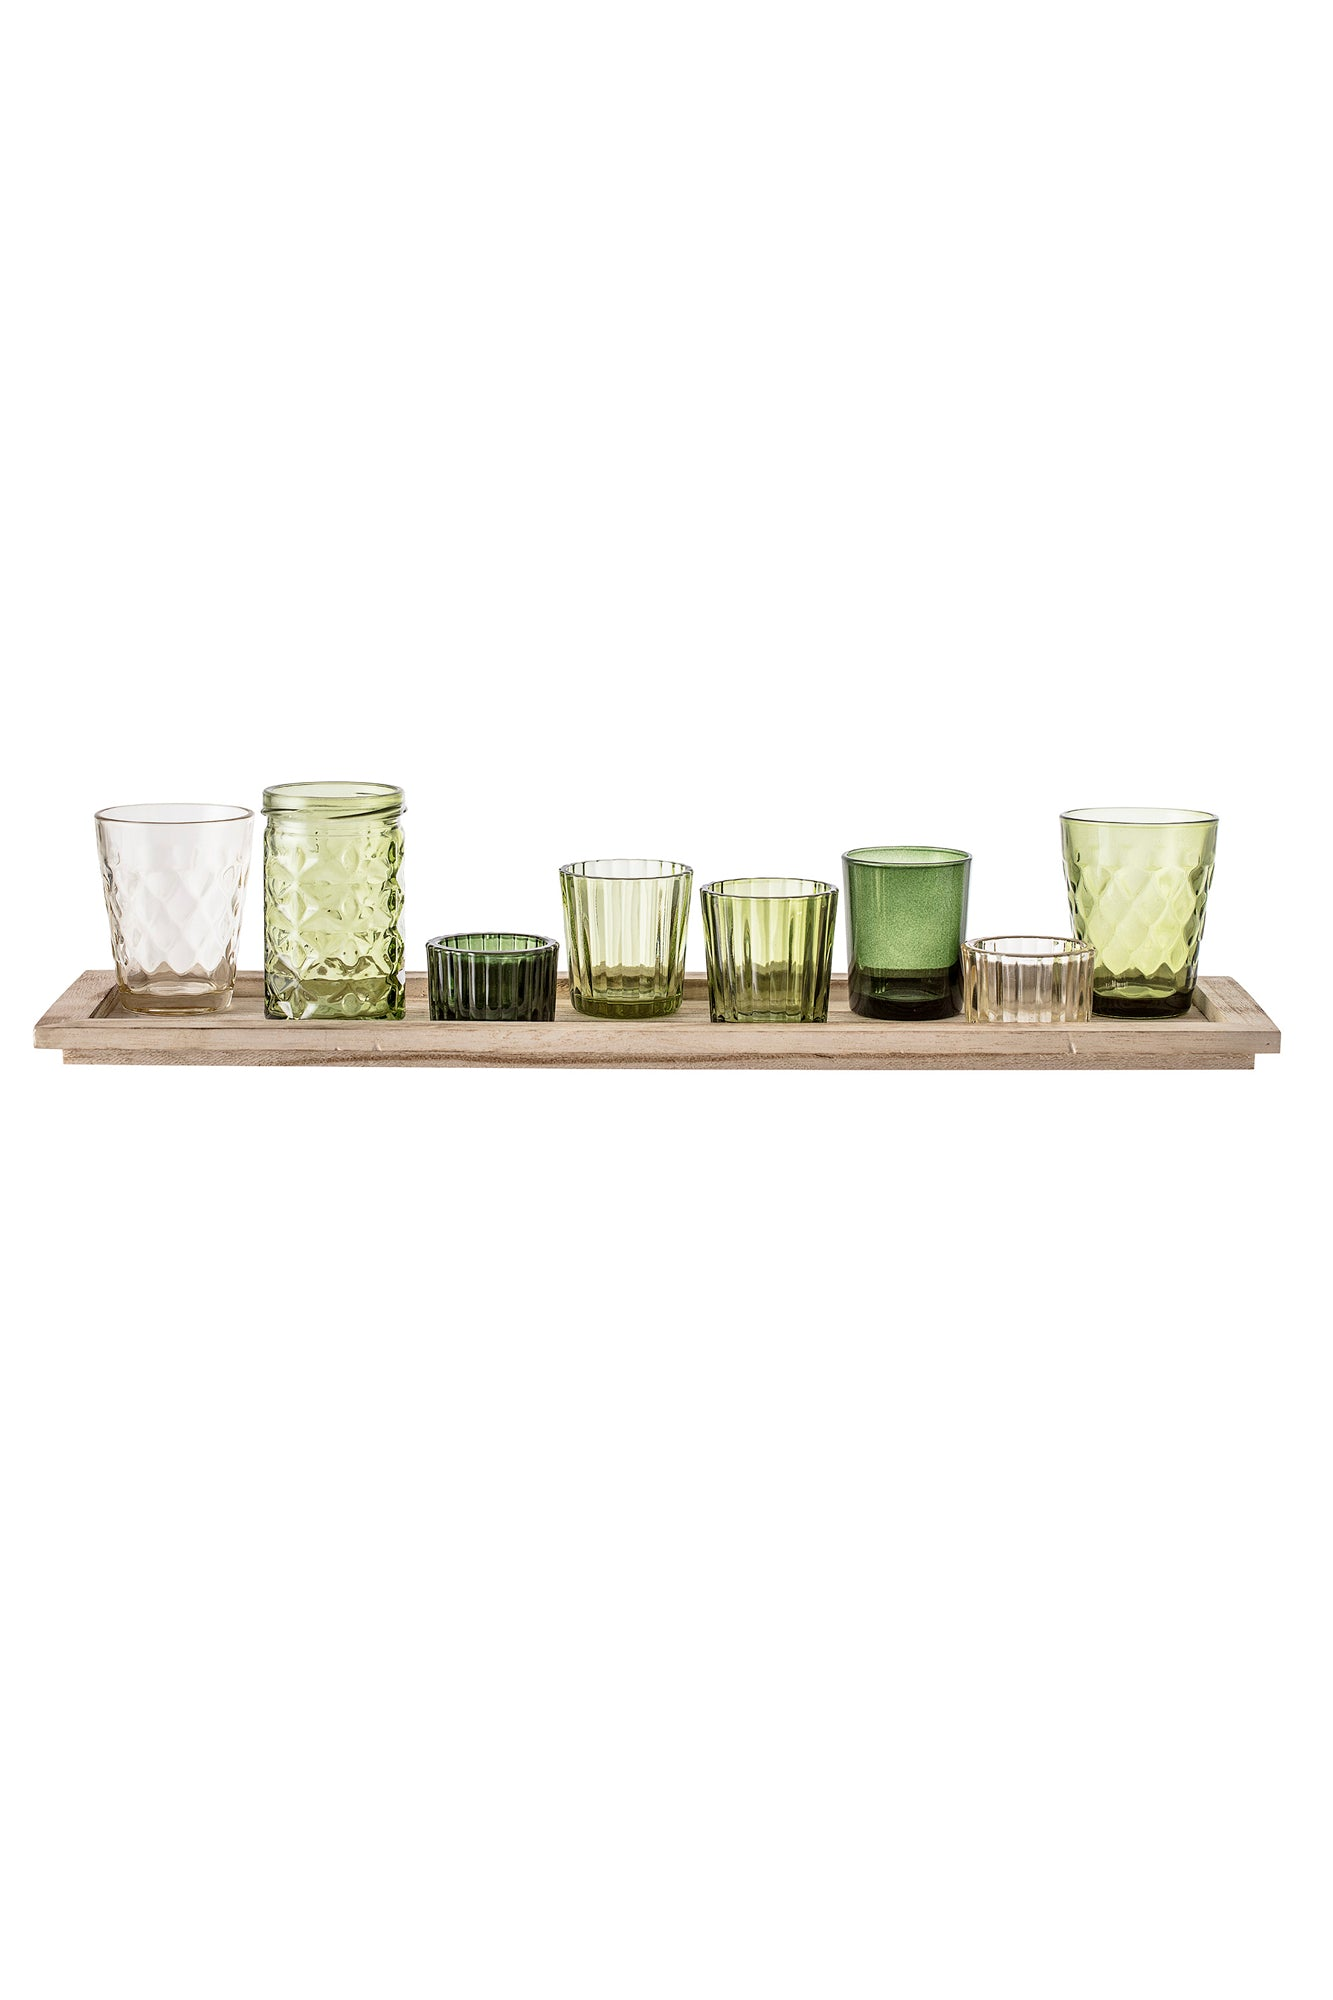 Glass Votive Long Tray, Vase, Bloomingville - 3LittlePicks